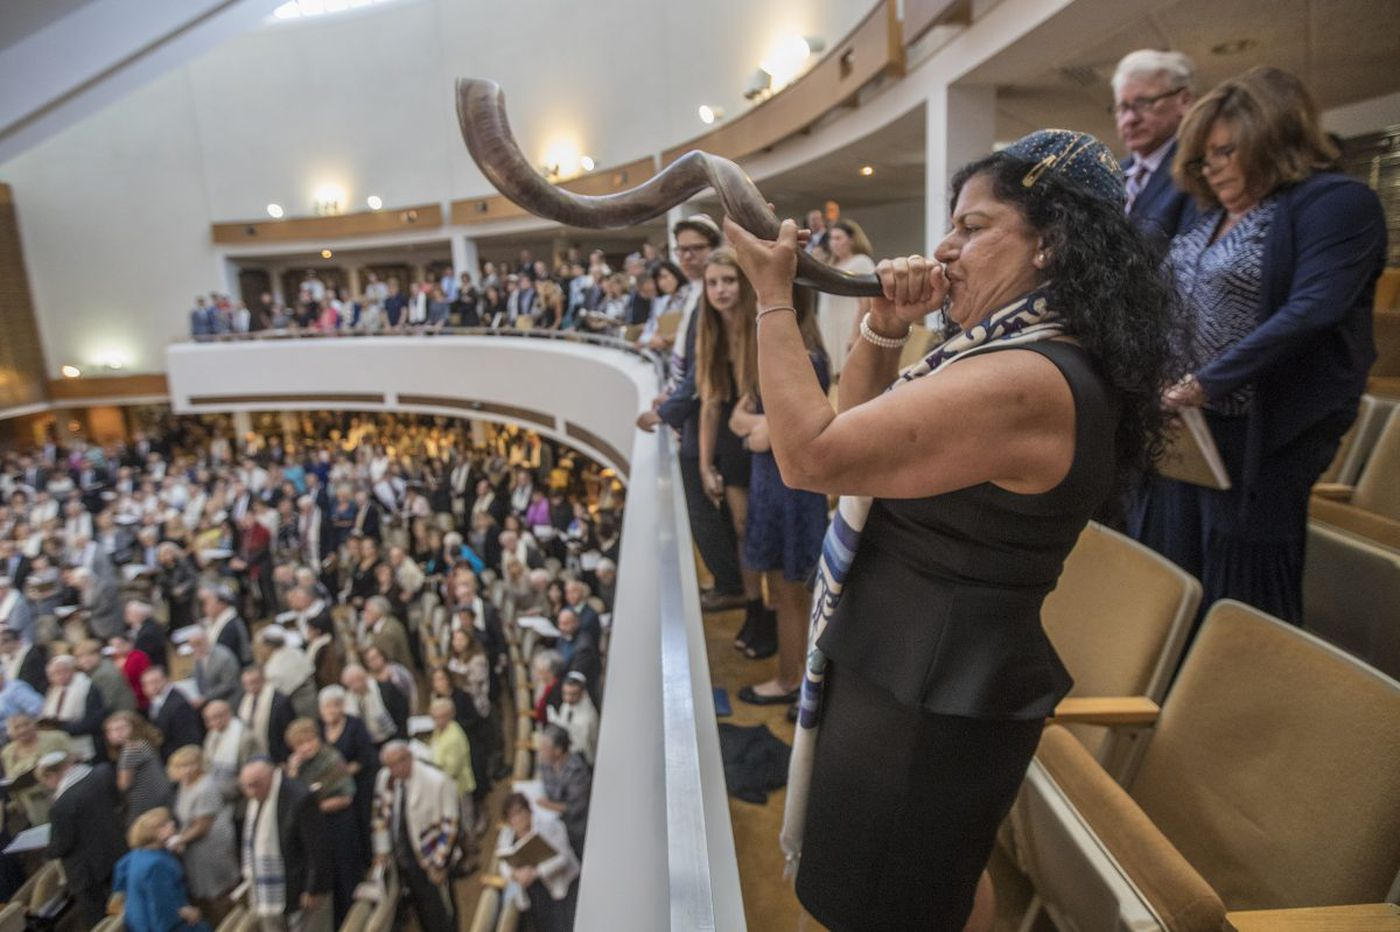 Picking up her husband's shofar, widow makes temple history